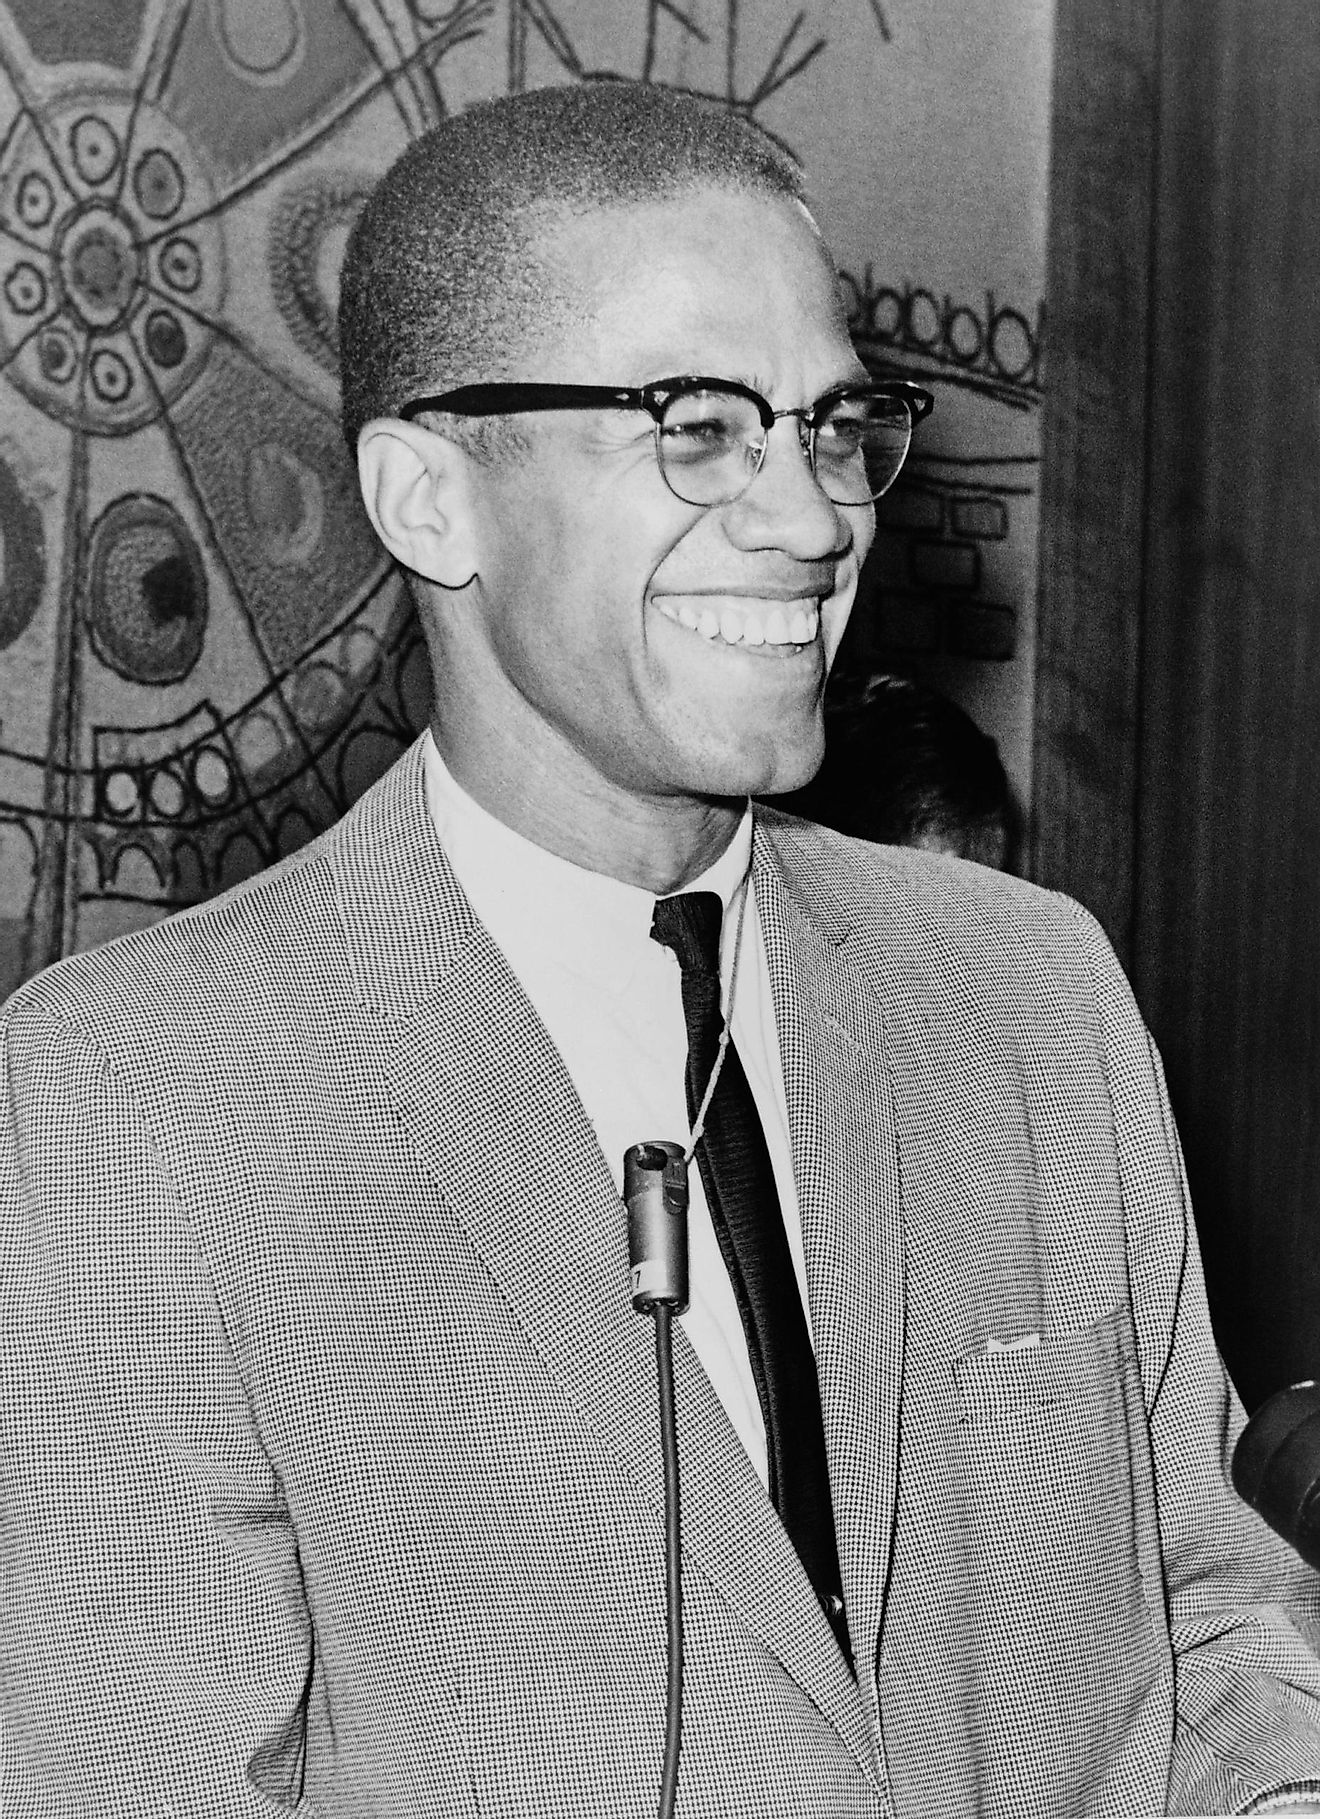 Malcolm X. Image credit: Ed Ford, World Telegram staff photographer / Public domain